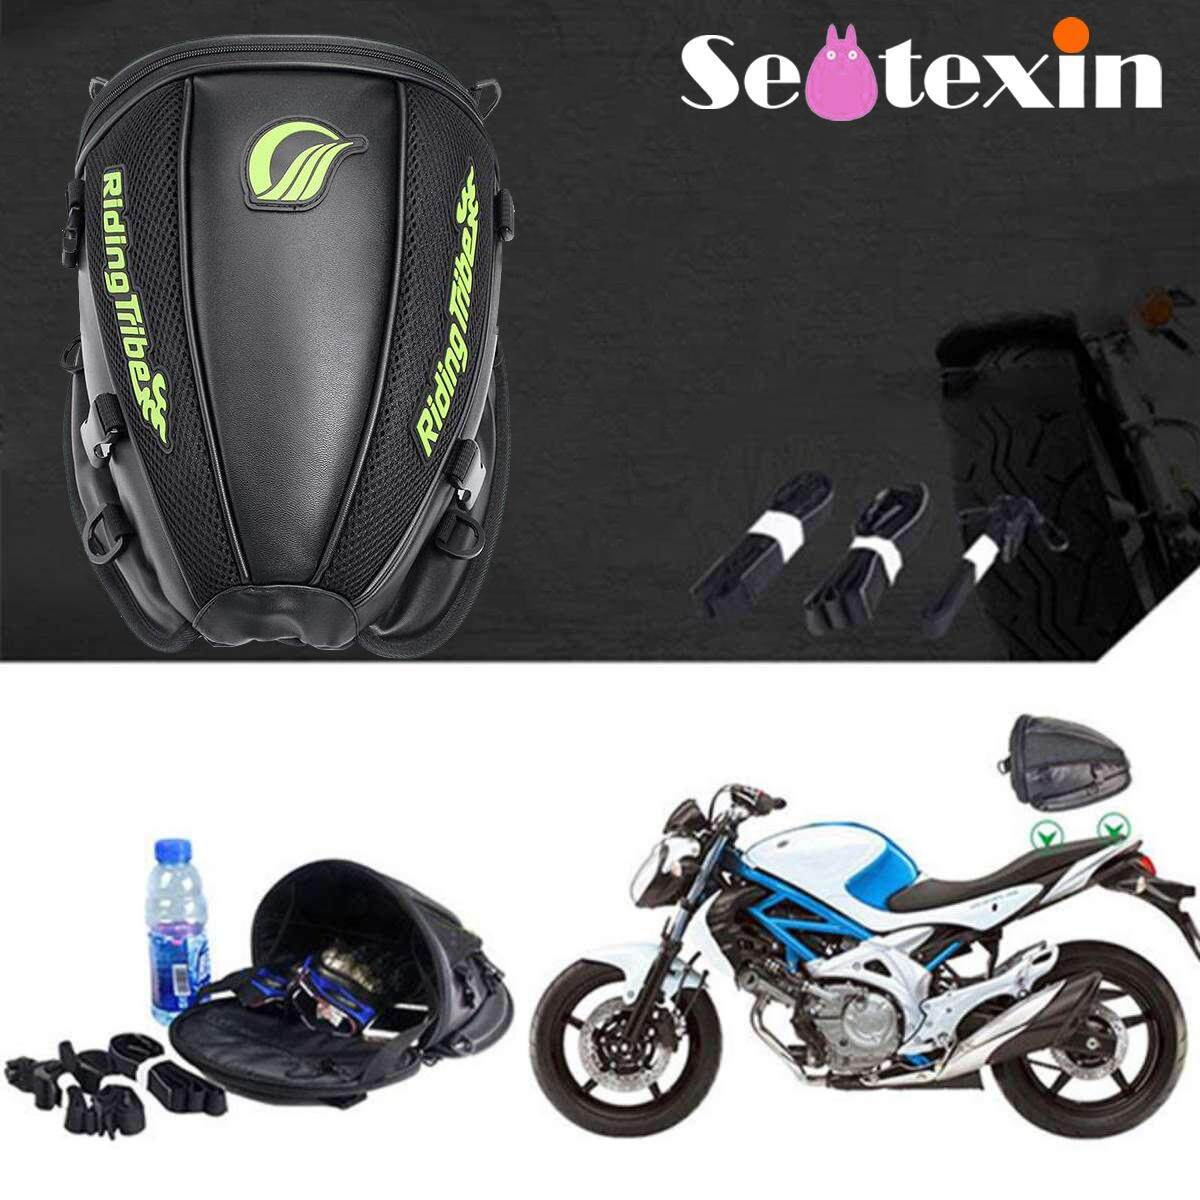 Moto Parts Spares Buy At Best Price In Suzuki Motorcycle Engine Diagram Together With Waterproof Tank Bag Genius Tail Bags Oil Fuel Saddle